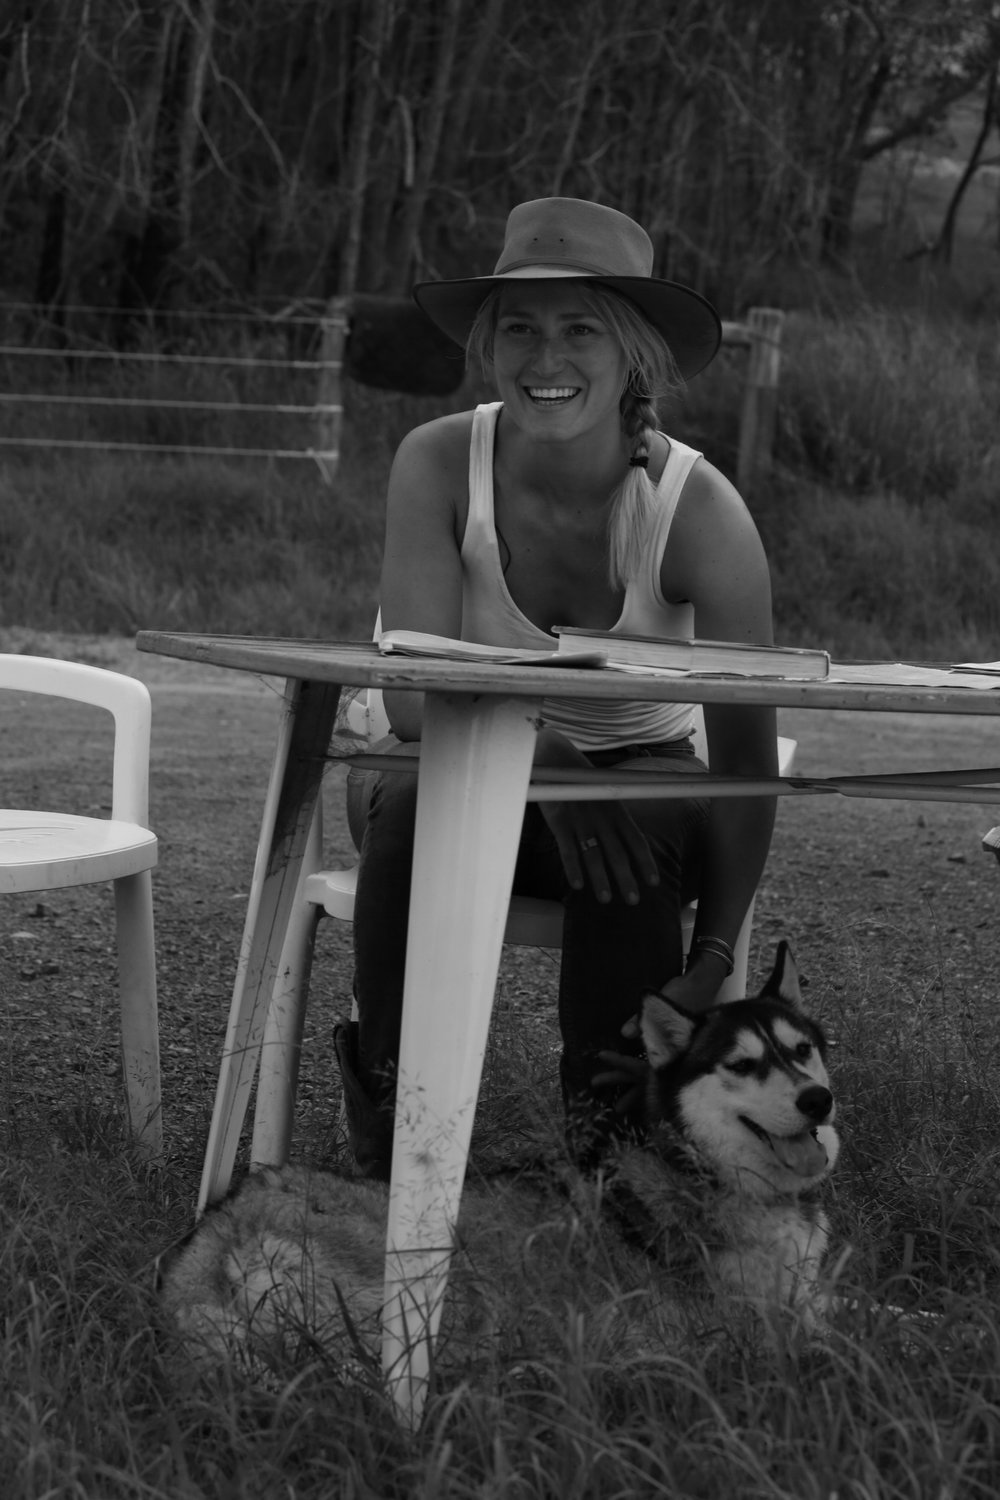 Clemmie Wotherspoon - Clemmie has been working with horses for four years in preparation for her trek. Her inspiration stems from a childhood dream instilled by Robyn Davidson's journey in 1980 across the Outback on camels-From Alice to Ocean. Clemmie has a degree in Psychology and enjoys volunteering with programs such as One Wave Surfing Therapy, Smart Pups Assistance Dogs, and Wollongara Outdoor School. Clemmie has completed over 10,000km of unsupported bicycle trips in the United States. She will be documenting her horse adventures in visual diaries and video.